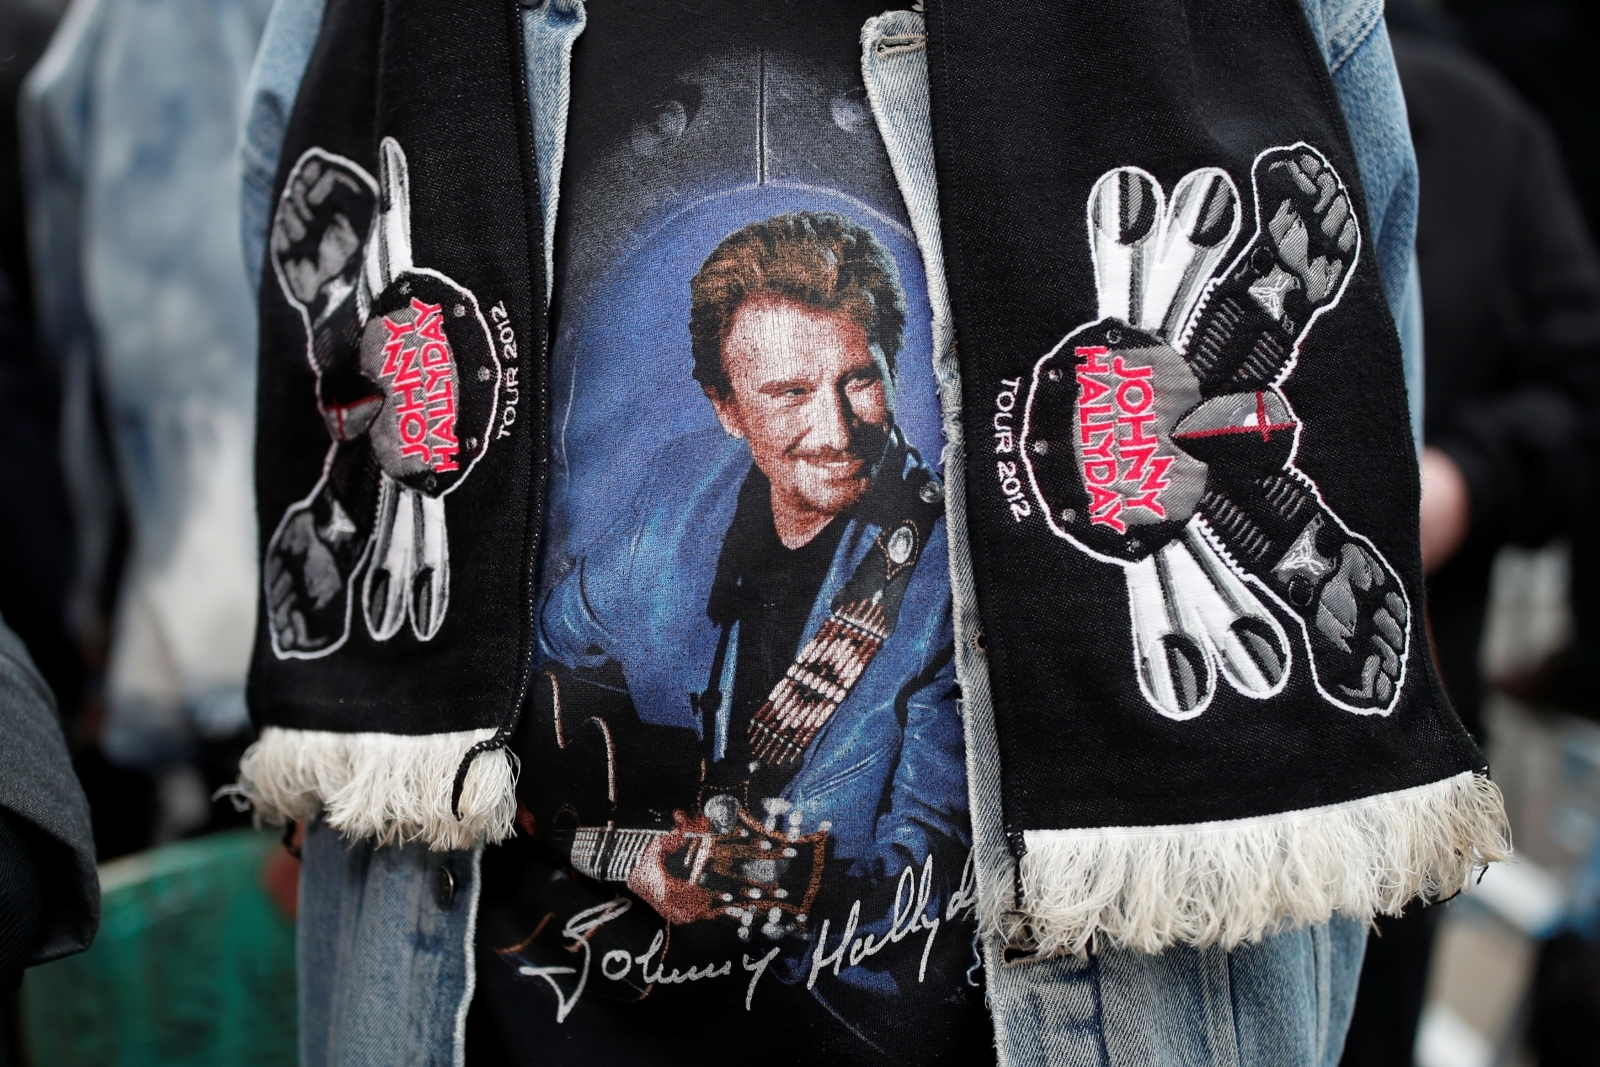 A fan of Johnny Hallyday pays his respects outside the late French singer's home in Marnes-la-Coquette near Paris, France, December 6, 2017